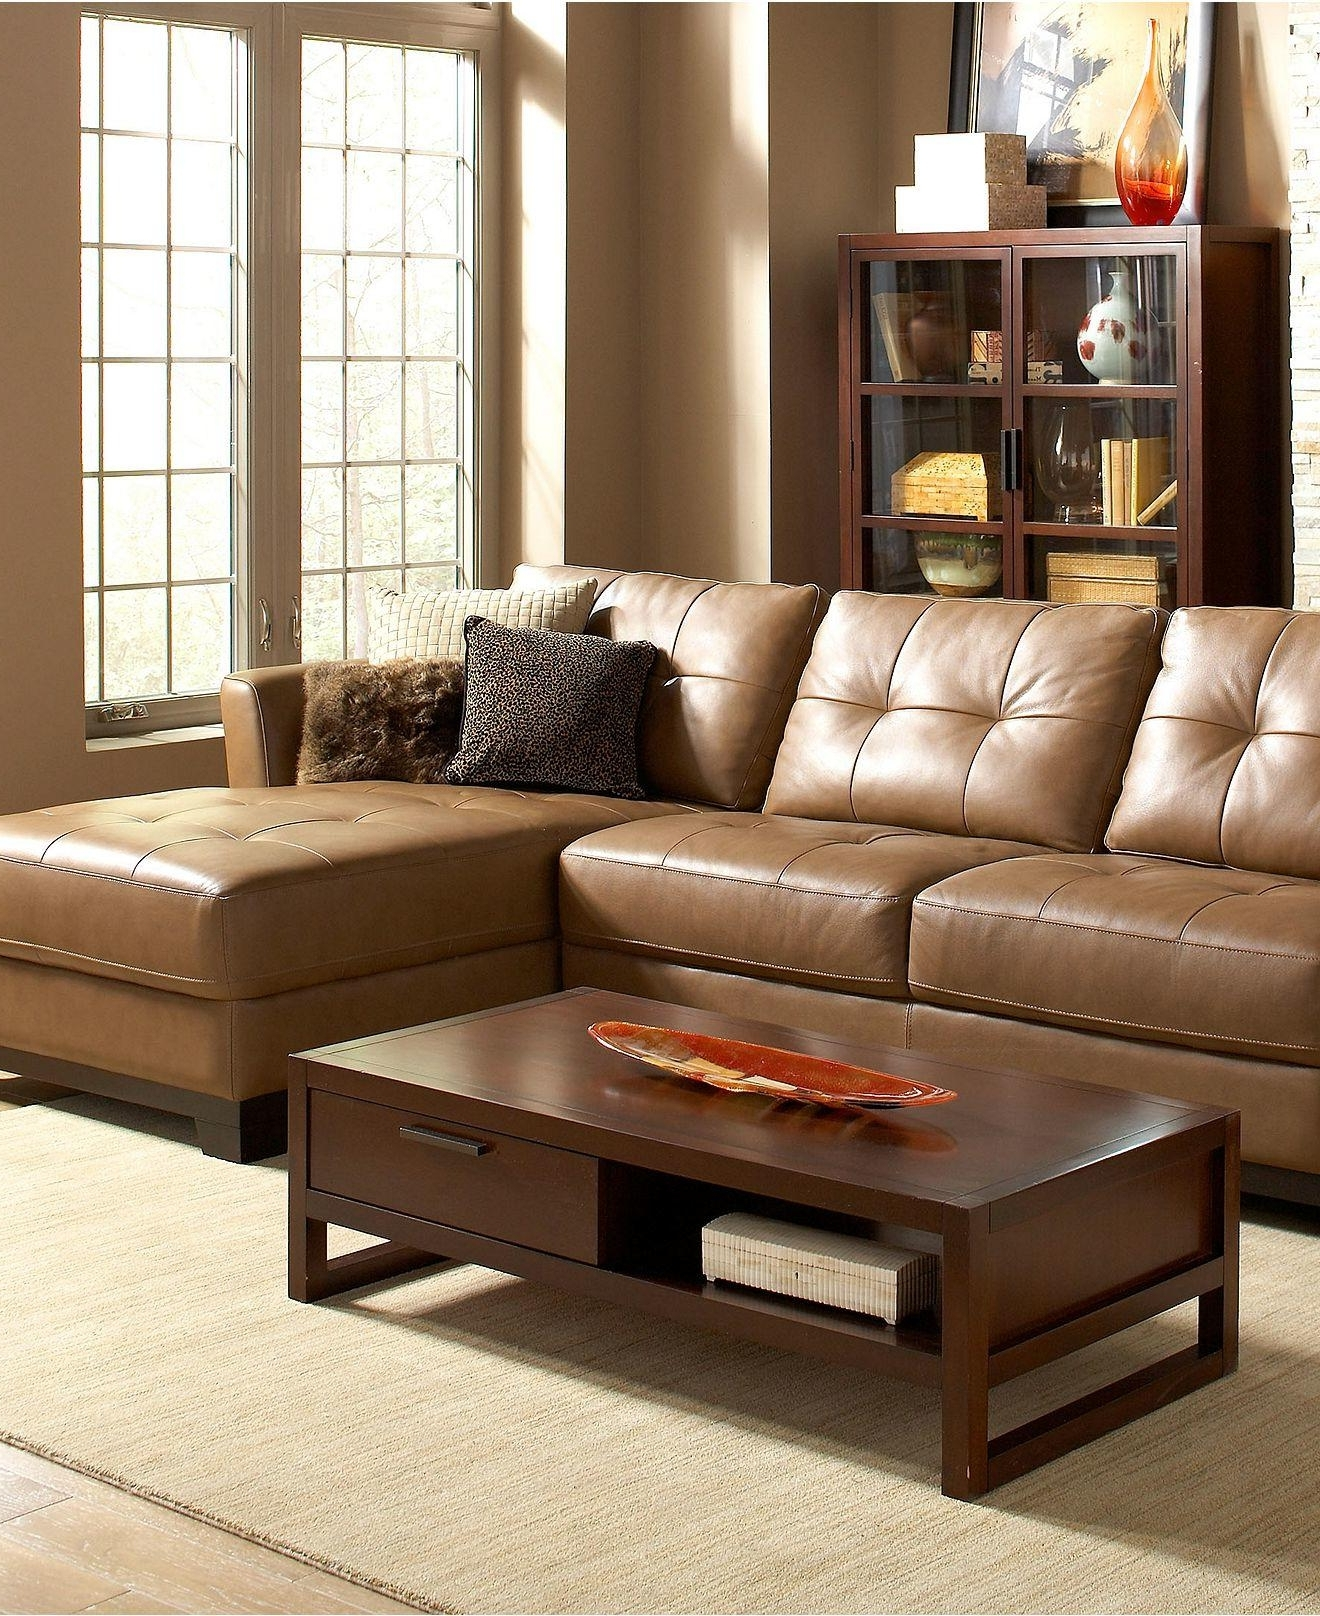 Macys Leather Sectional Sofas Inside Popular Martino Leather Sectional Living Room From Macys (View 10 of 20)